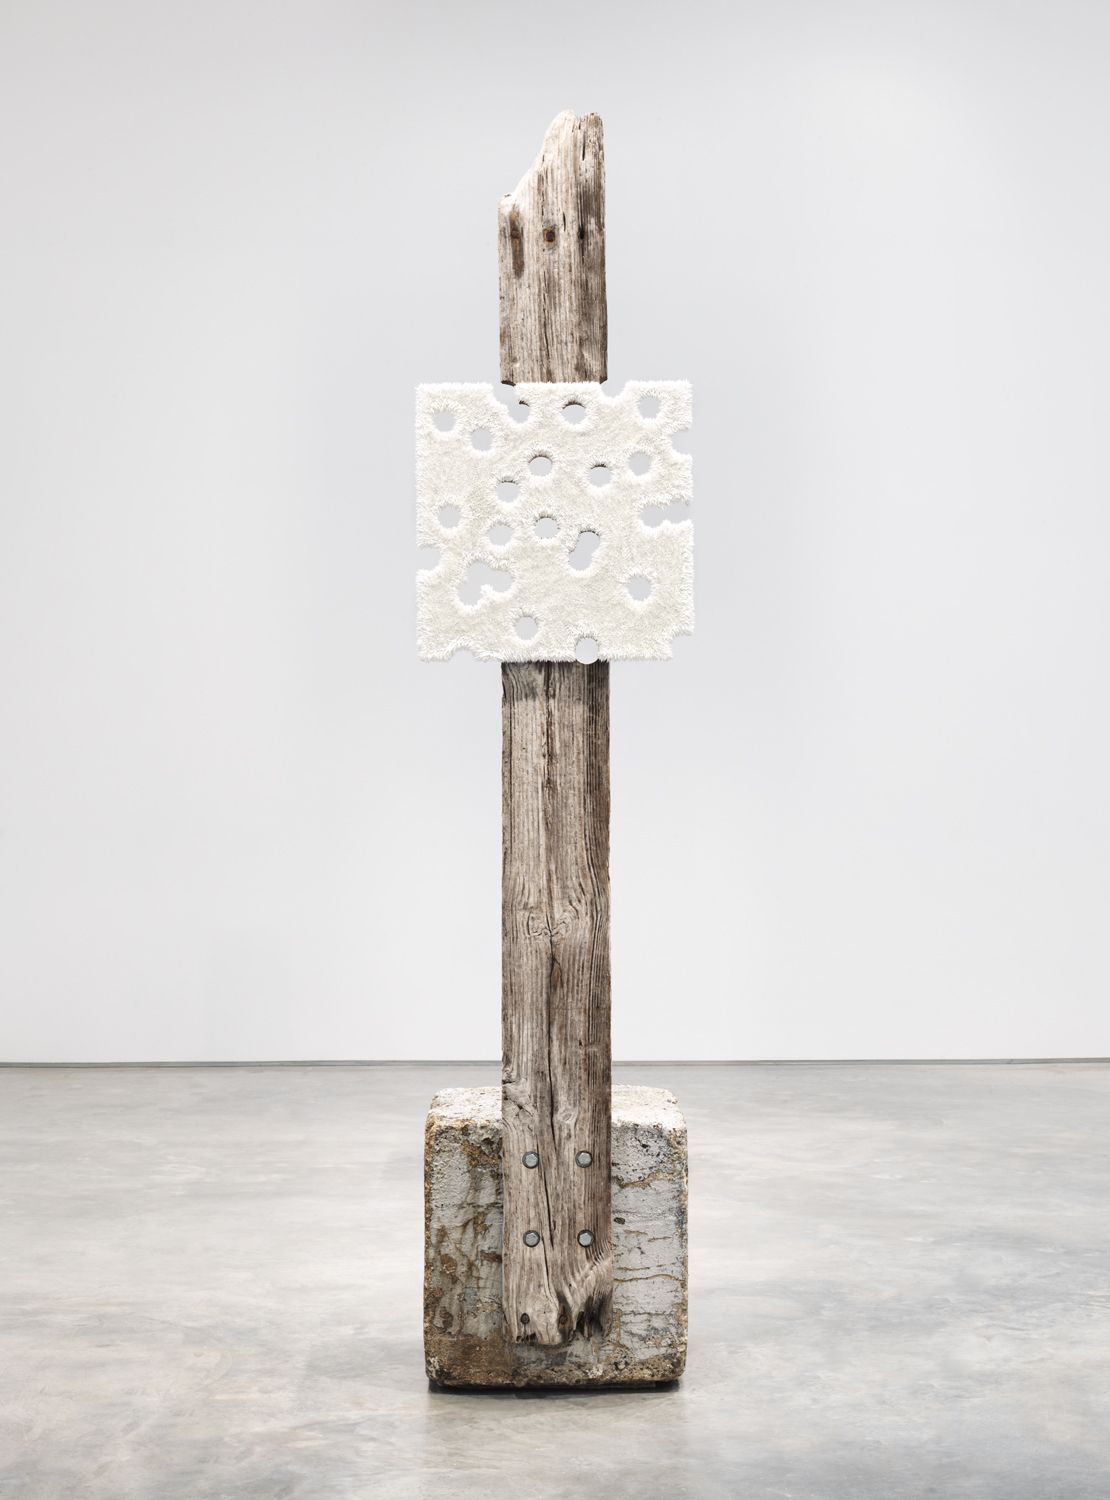 a glory hole white painting set on a piece of driftwood to make a sculptural artwork by donald moffett